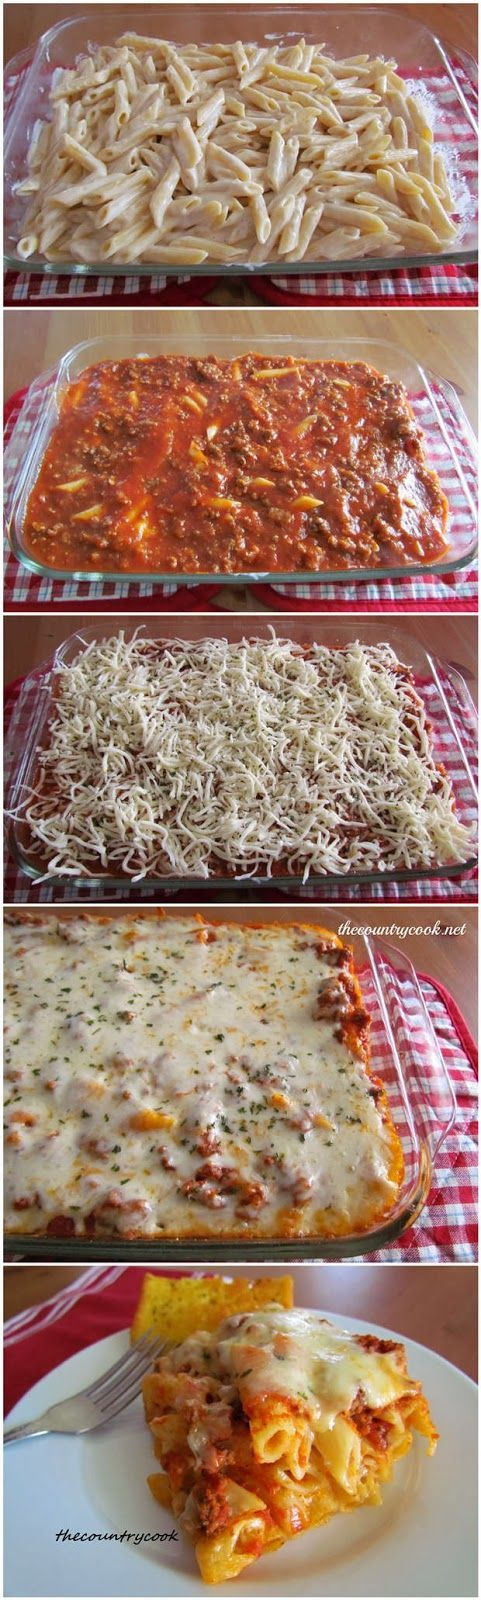 Easy Baked Ziti - so tasty & very easy to make! My tween daughter was even able to do this one on her own!